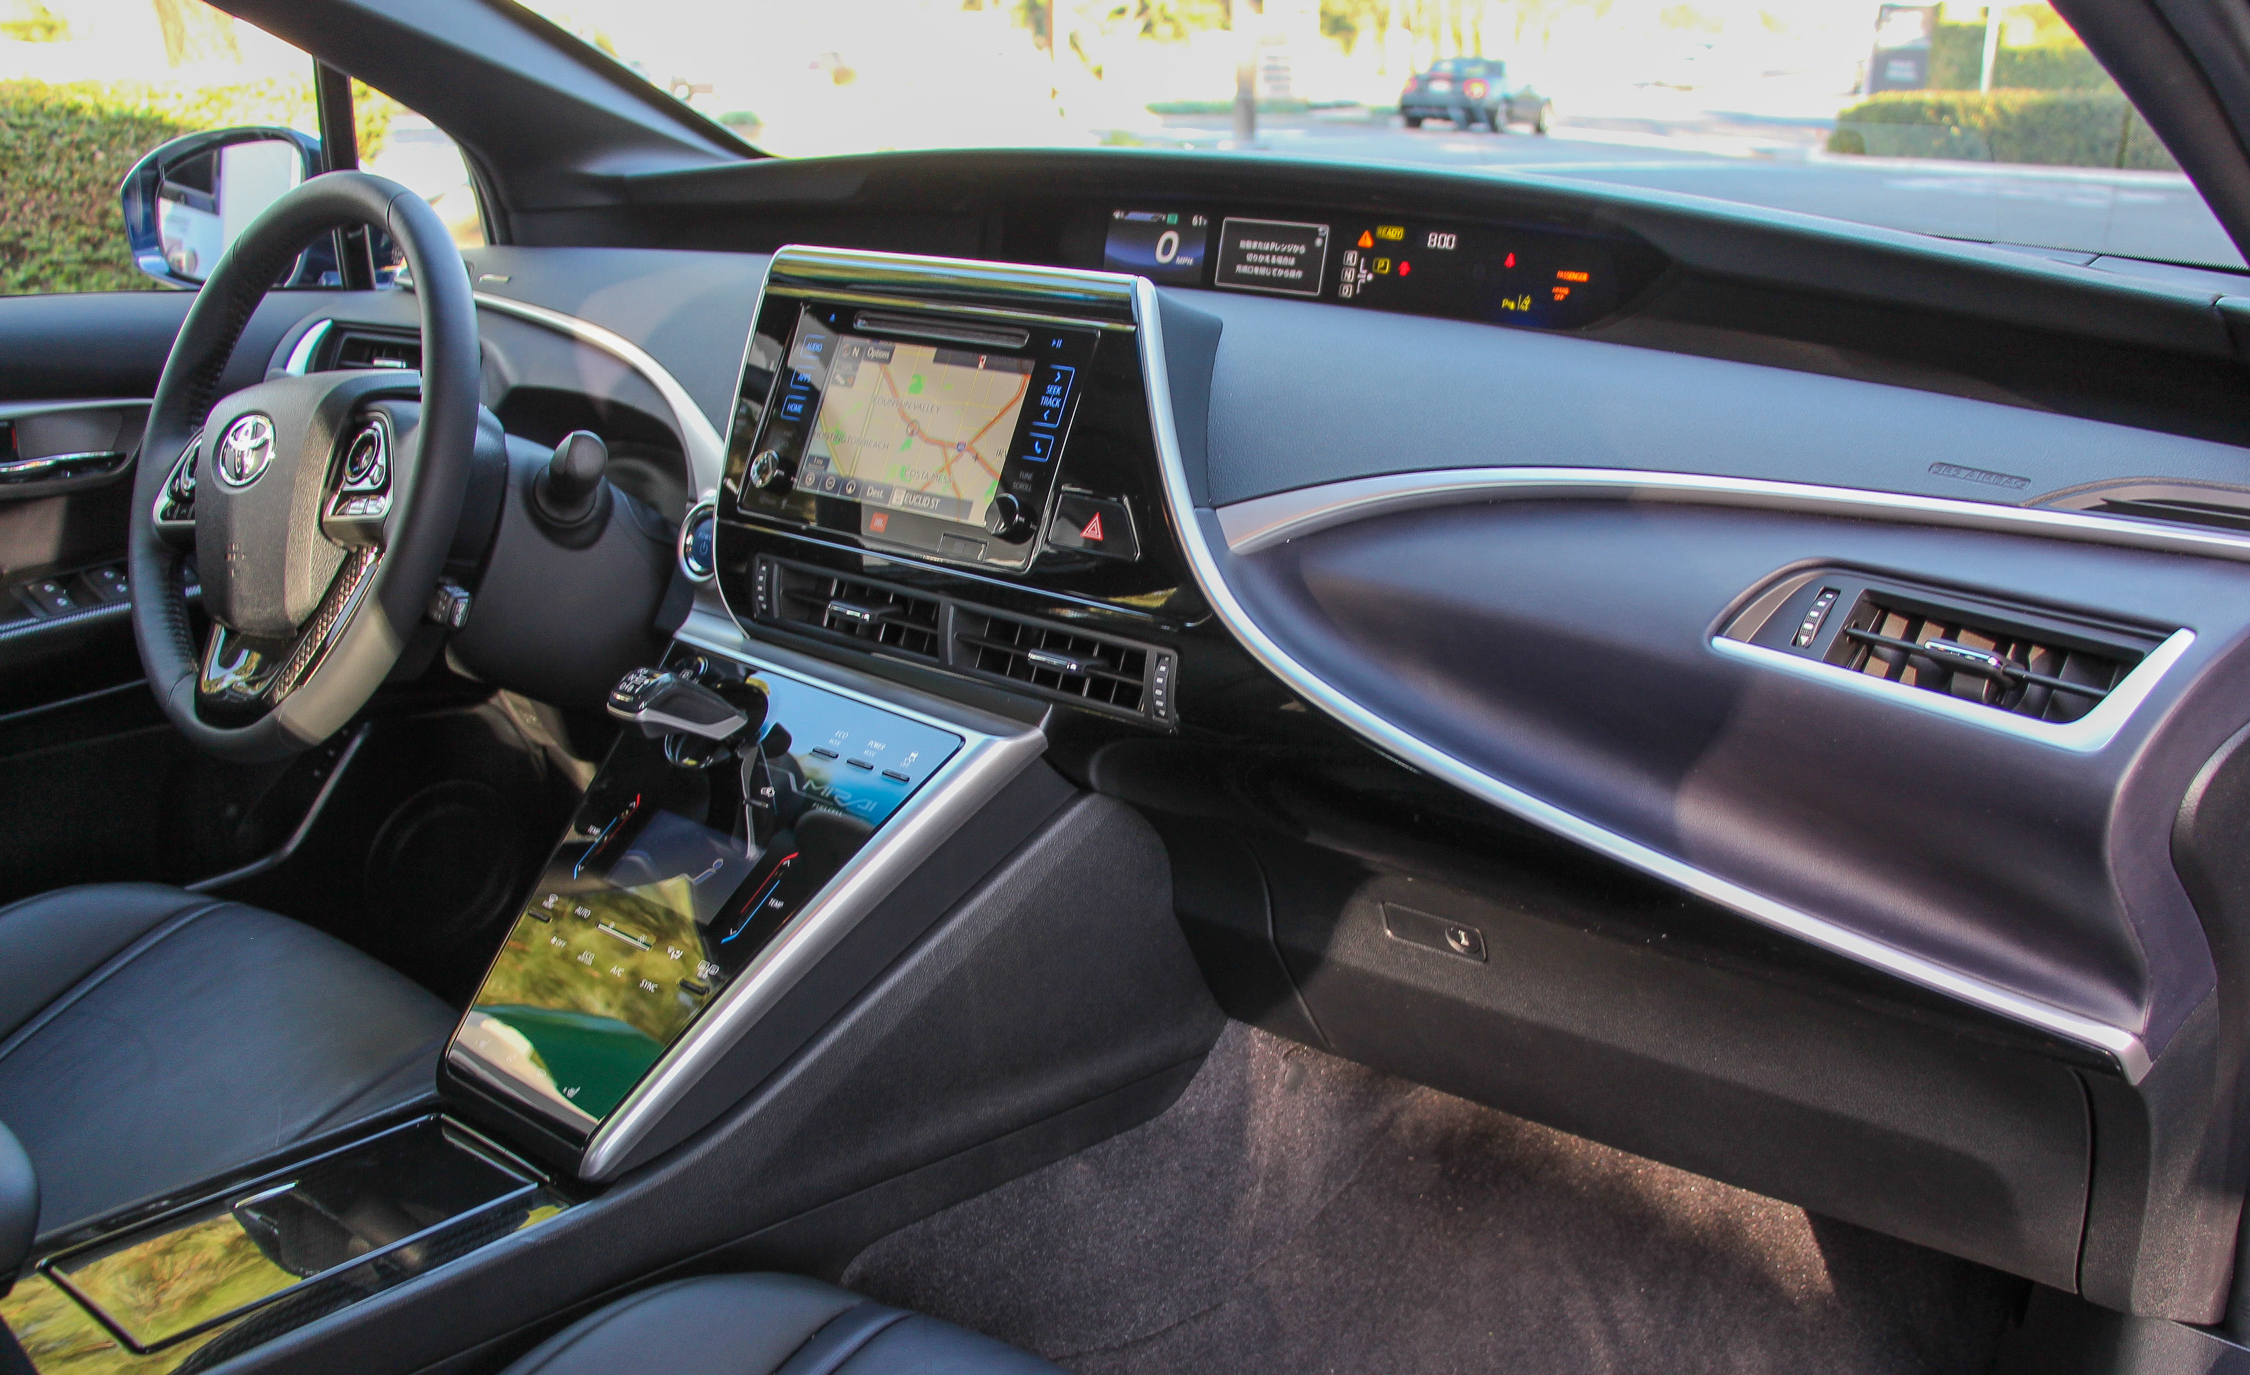 2016 Toyota Mirai Interior Dashboard (View 17 of 18)